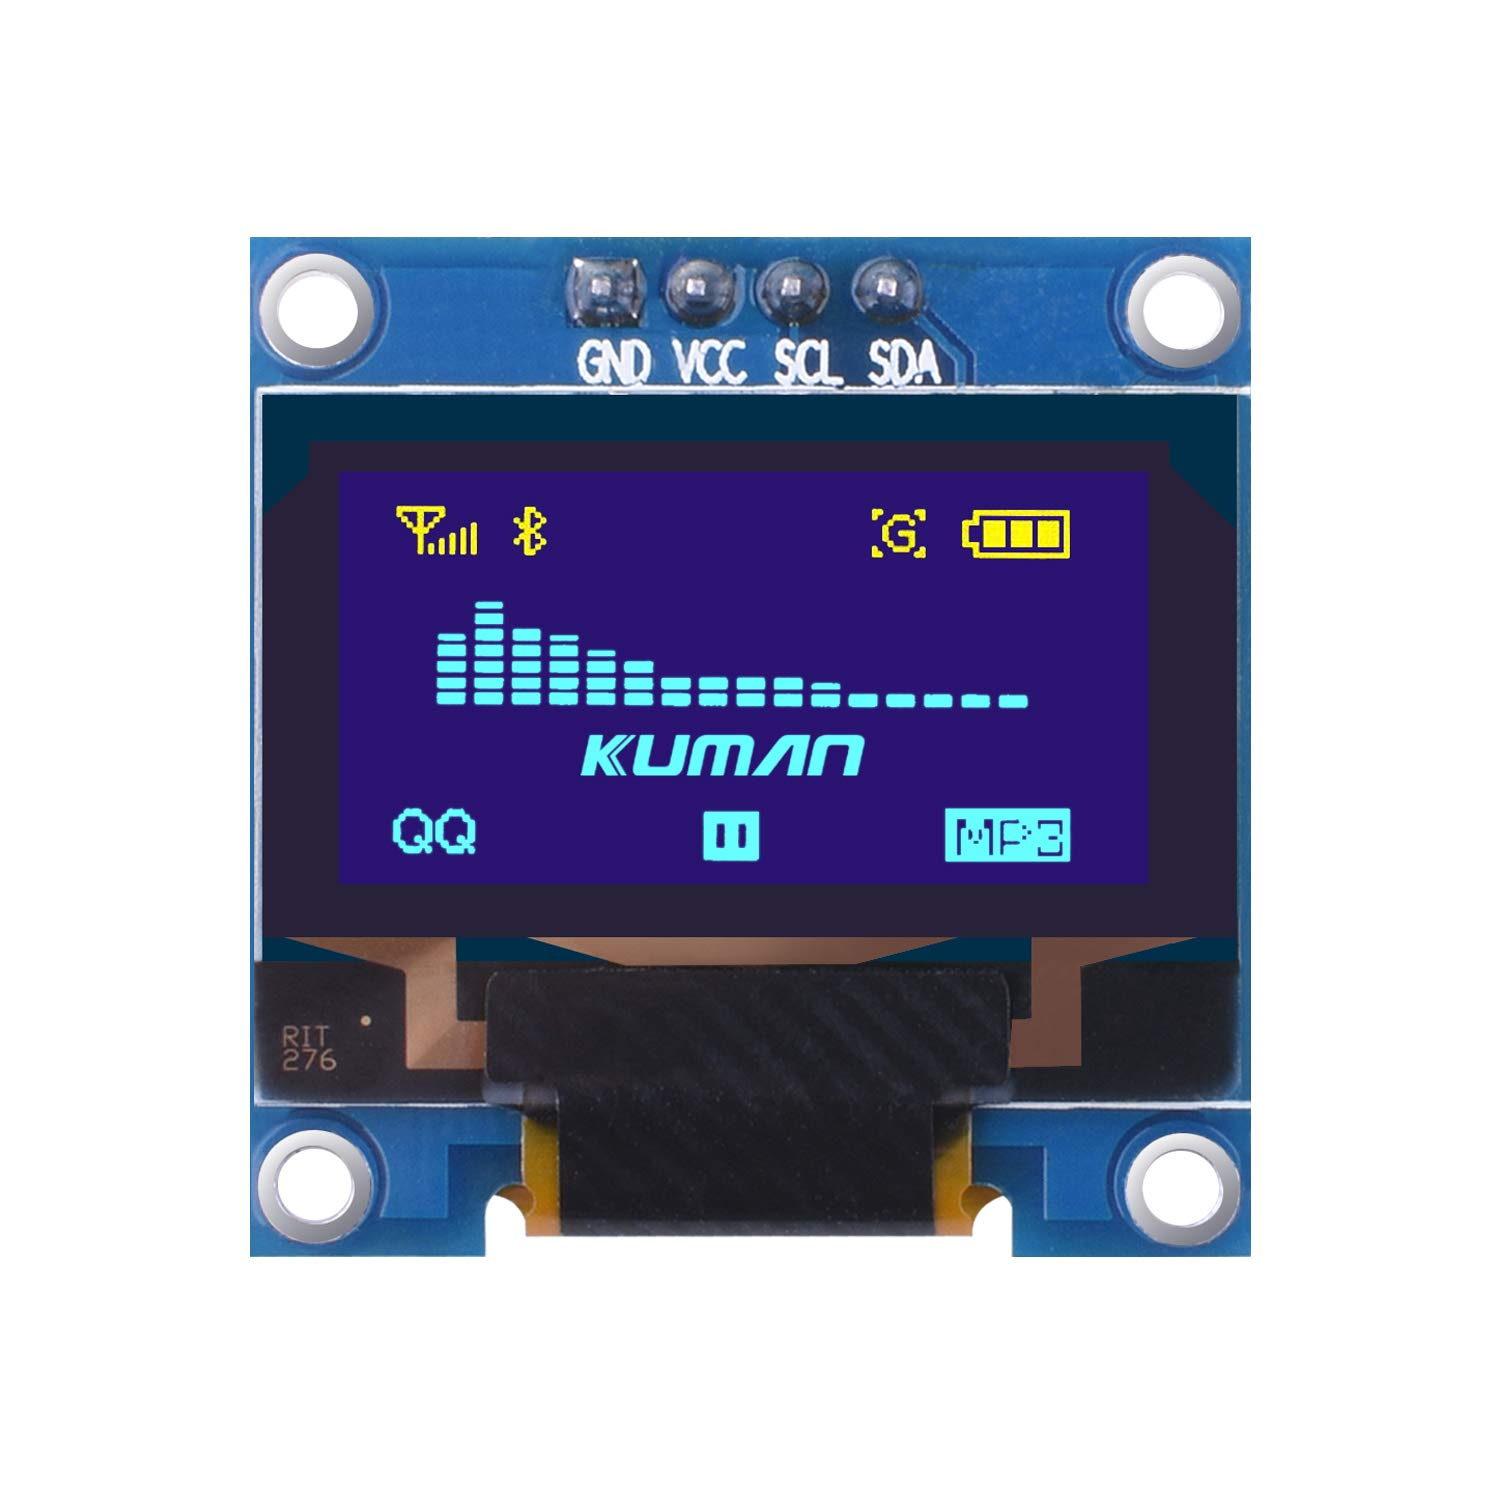 Kuman 0 96 Inch Yellow Blue IIC OLED Moudle I2c IIC Serial 128x64 LCD  Display Compatible with Arduino Raspberry pi KY34-BY (Blue & Yellow)